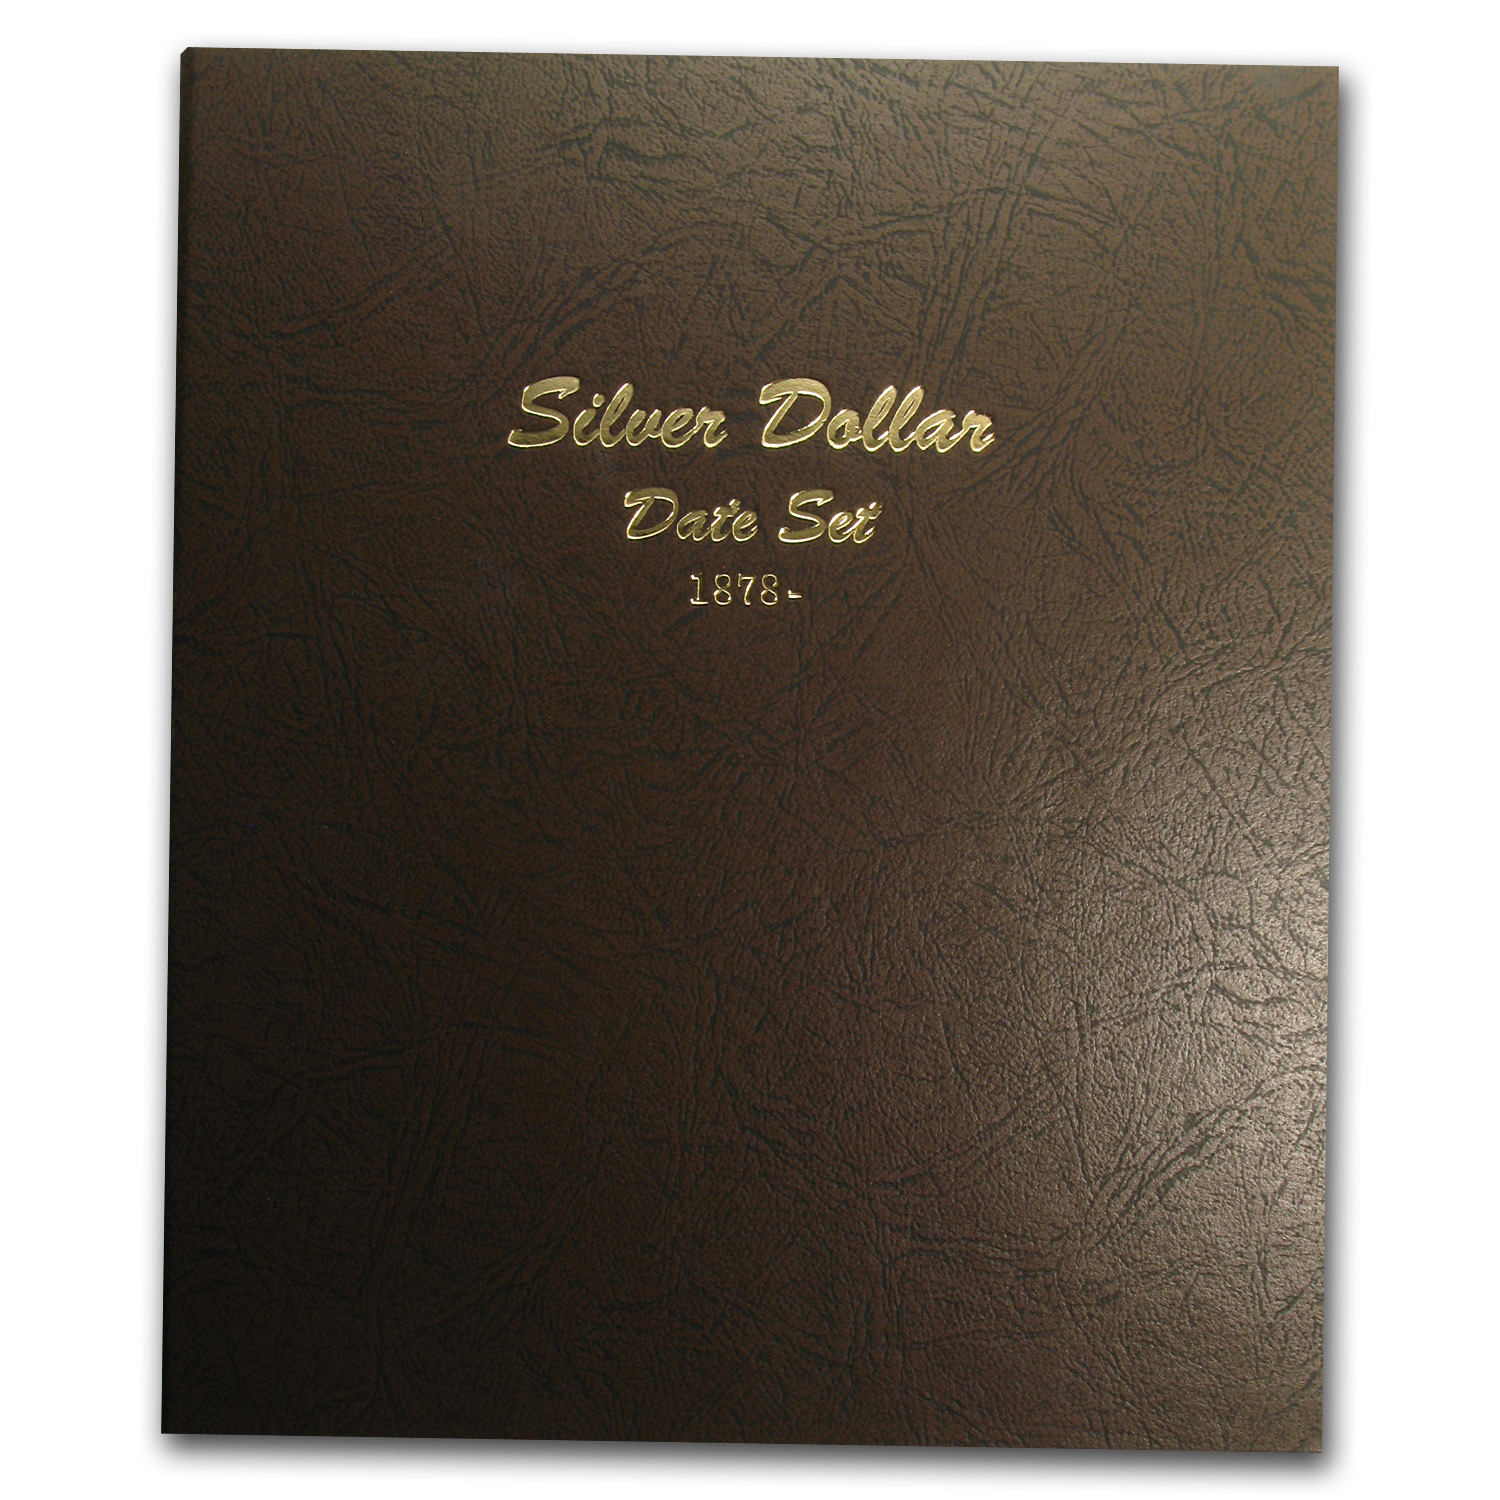 Dansco Album #7172 - Silver Dollar Date Set 1878 to Date